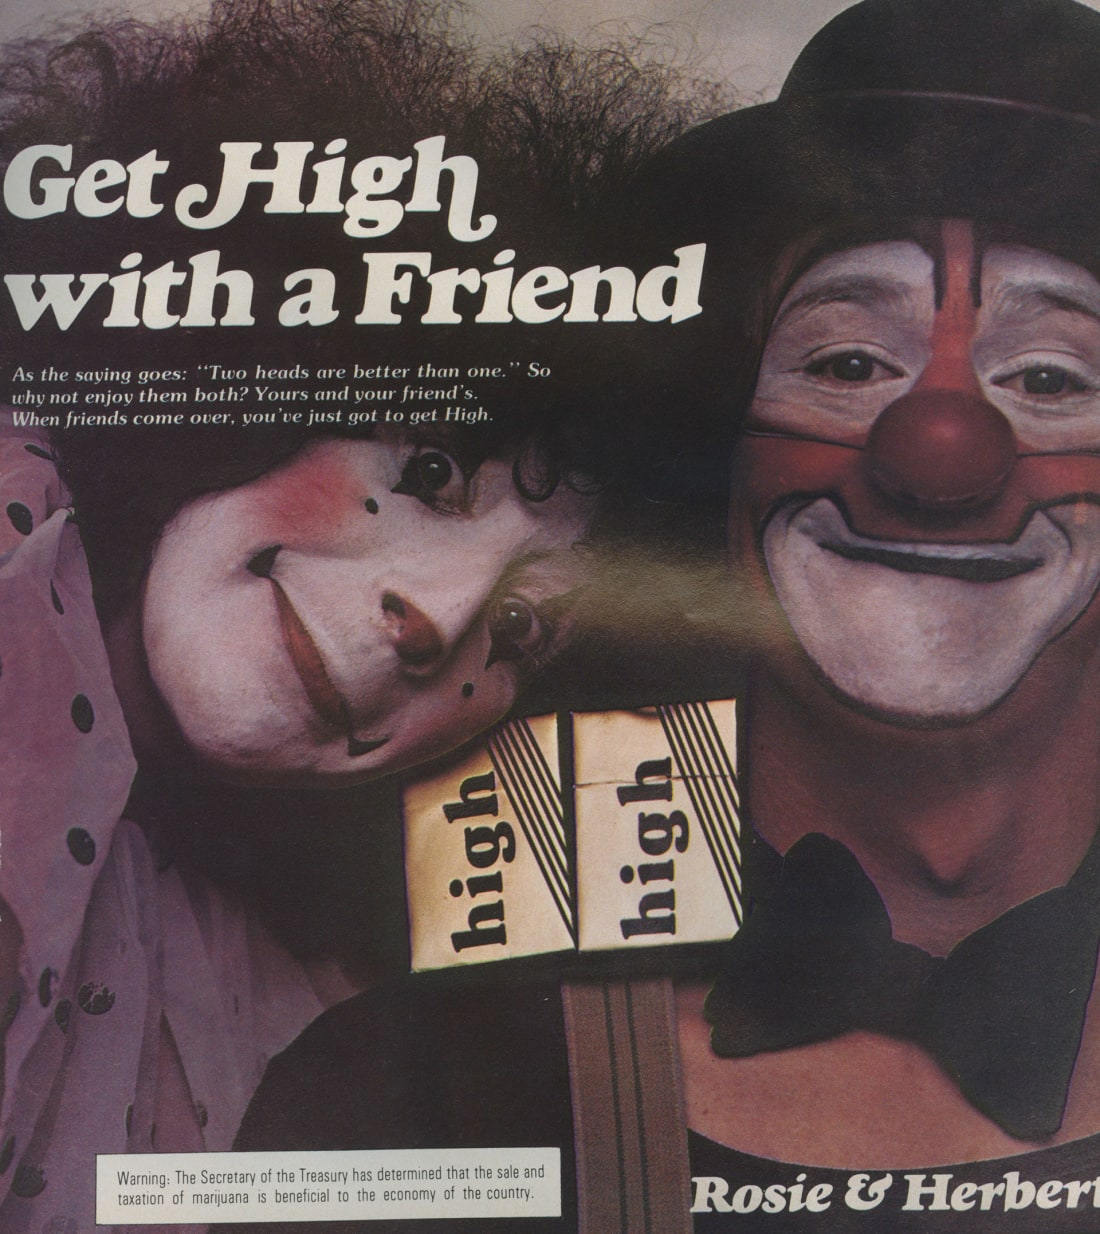 Get High With a Friend